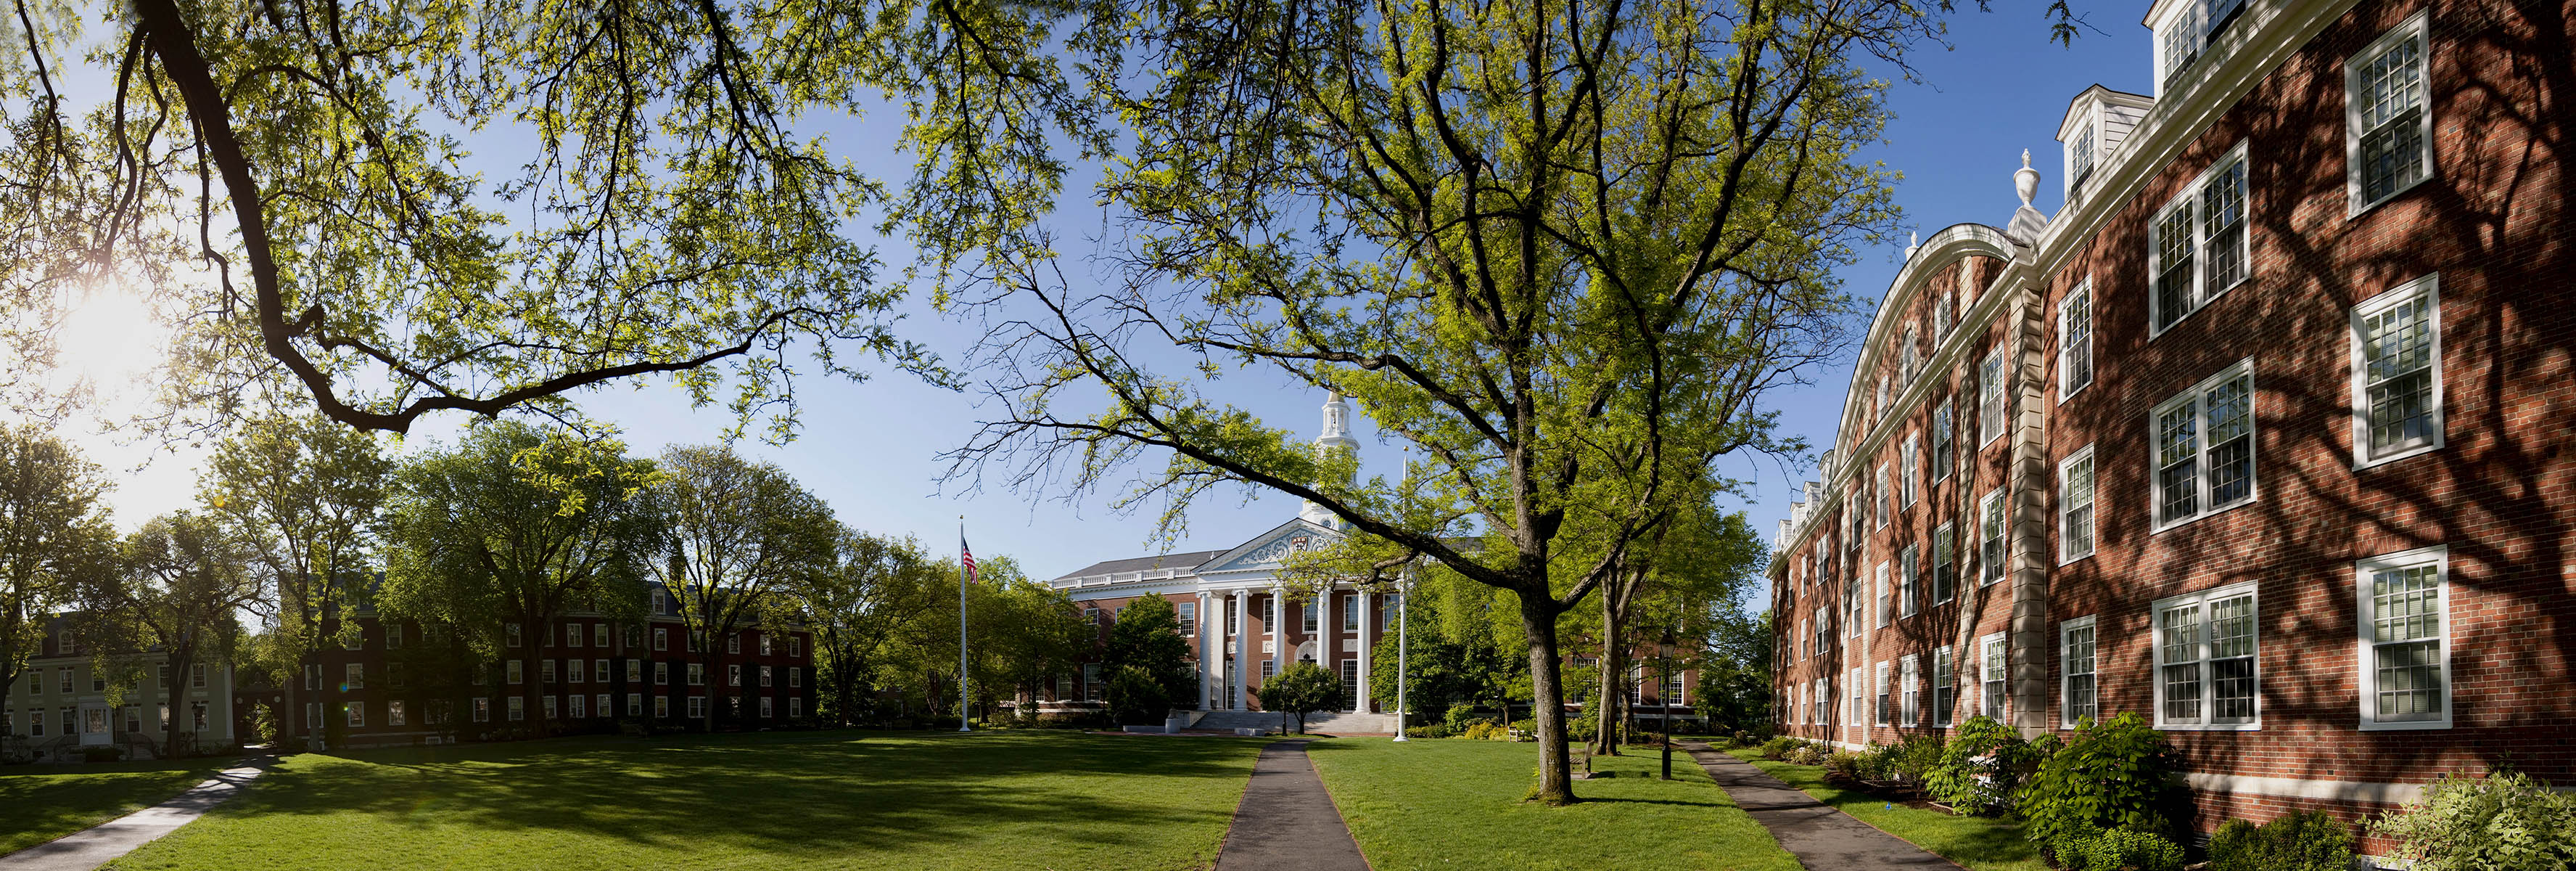 Harvard Business School campus.Photograph by Brooks Kraft